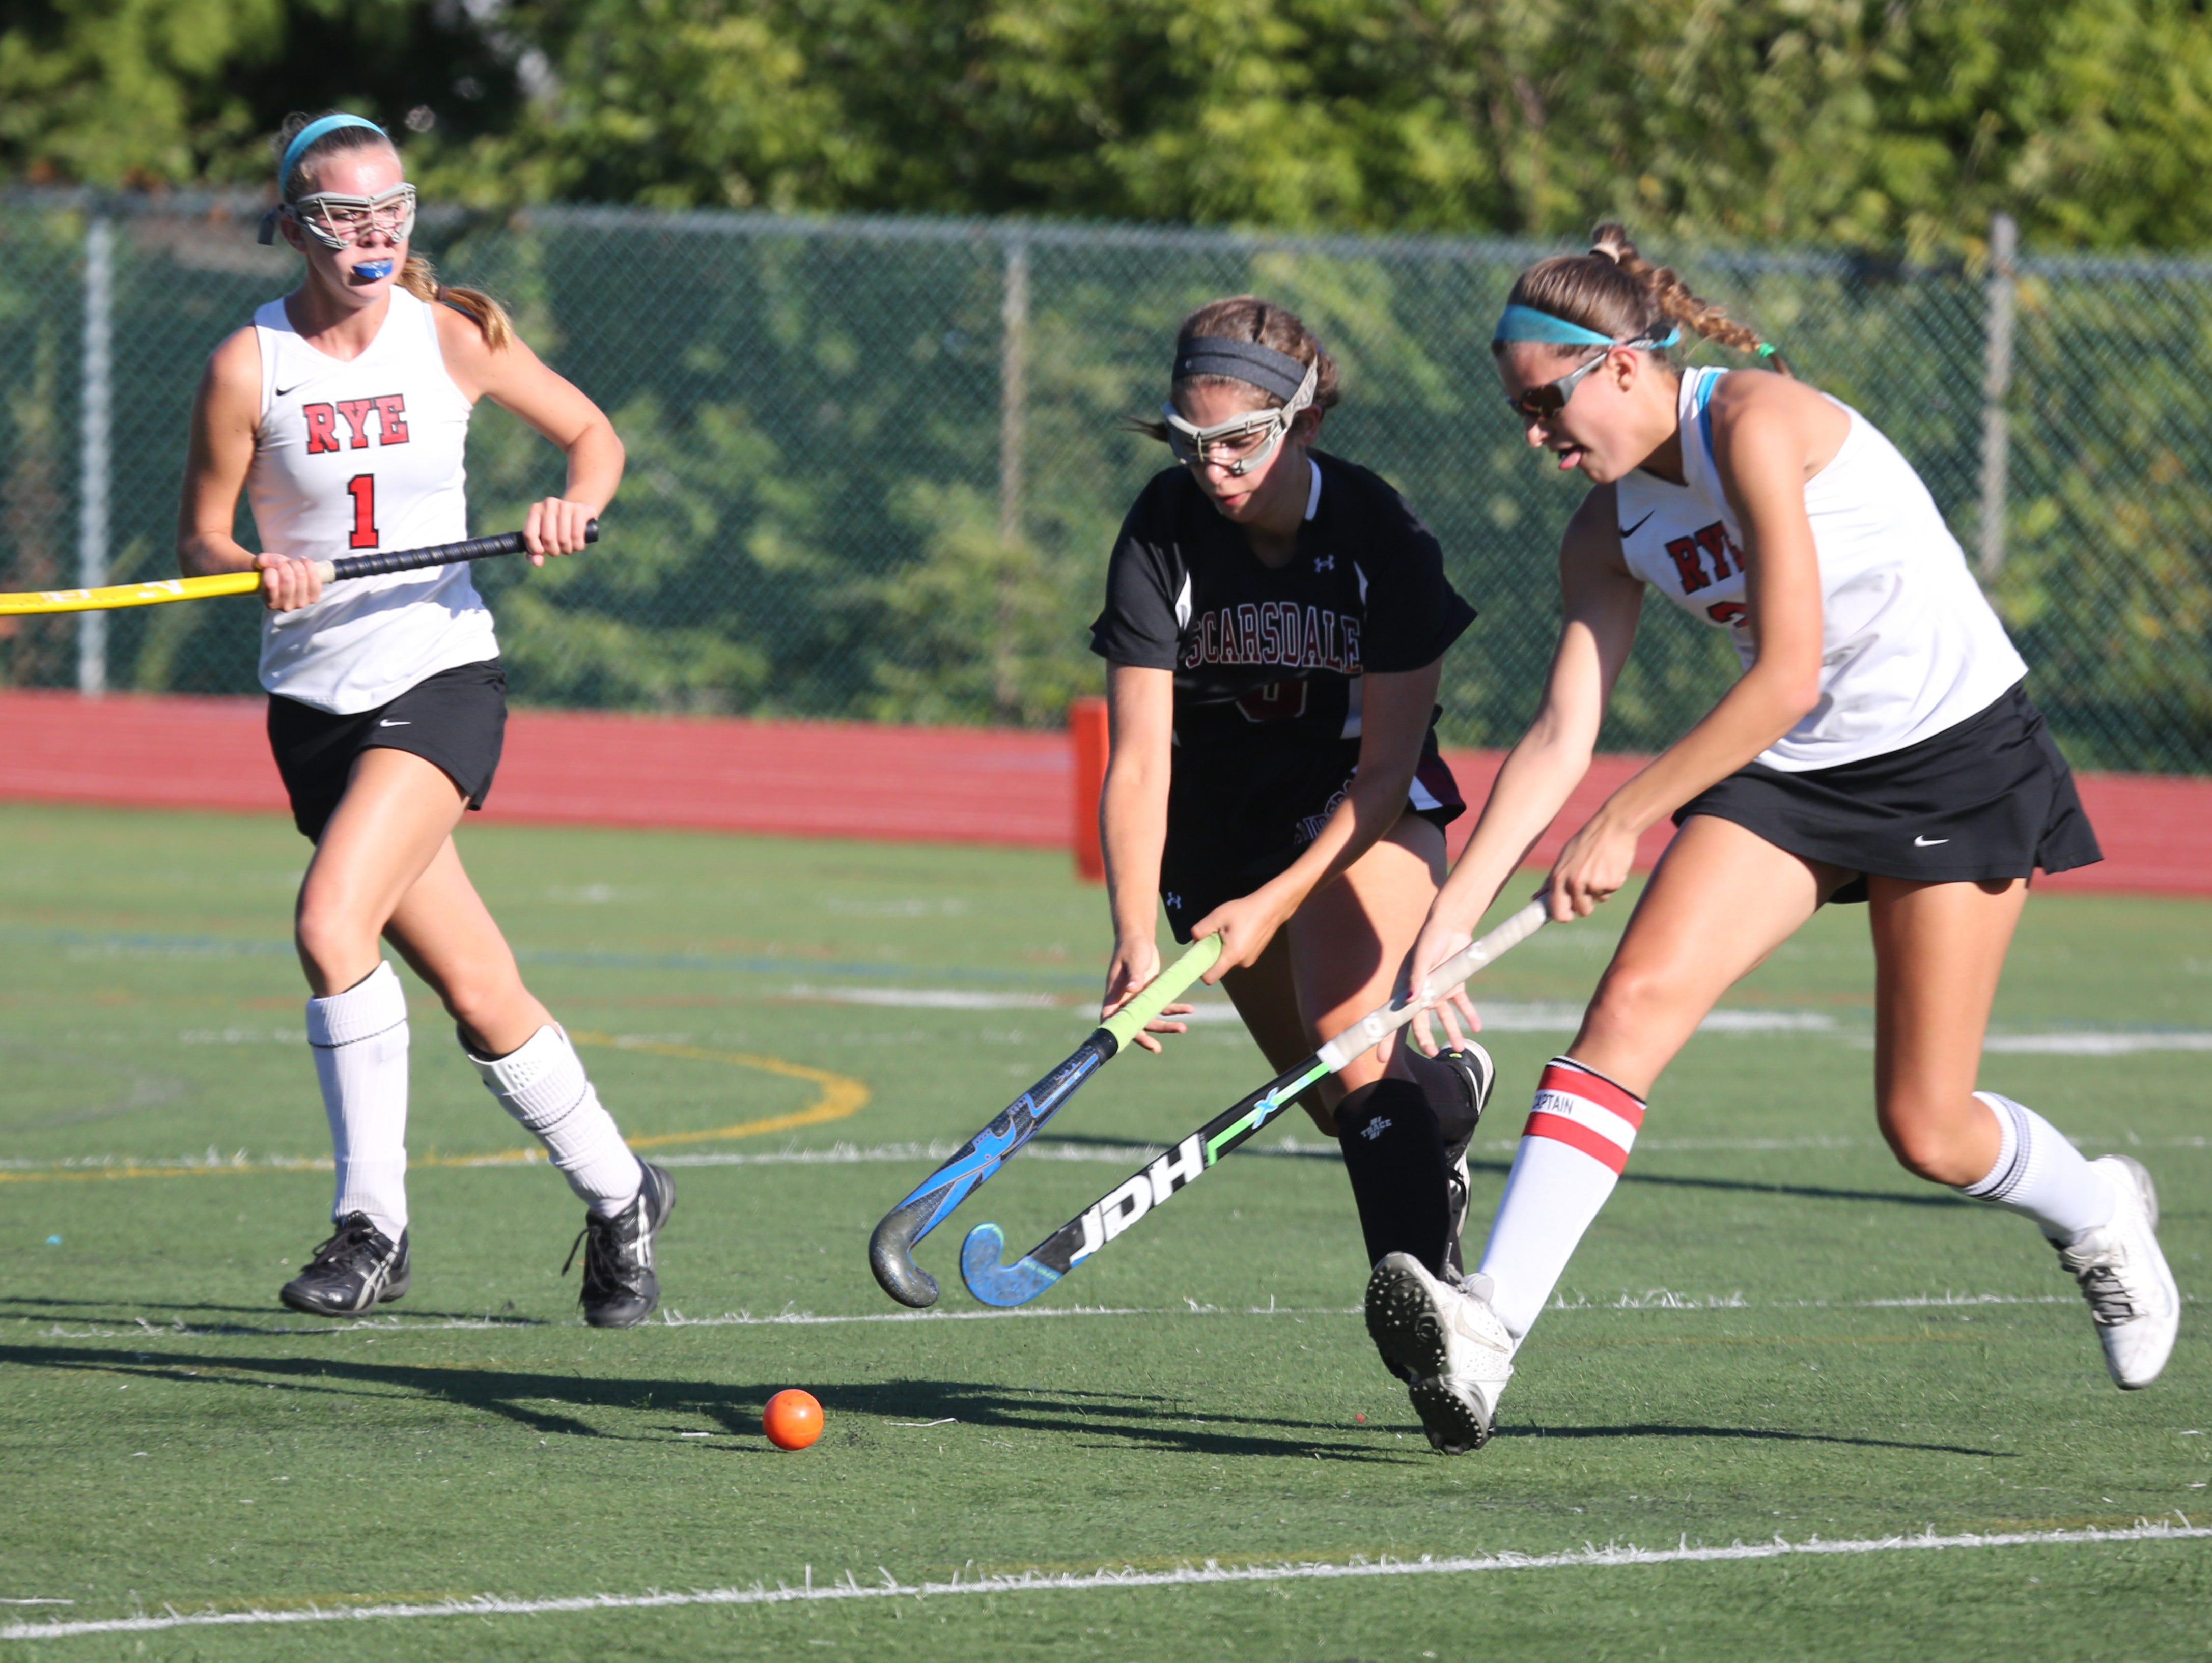 Scarsdale's Ali Bauersfeld and Rye's Ally Abate chase down a ball during their field hockey game in Rye, Sept. 24, 2015. Rye beat Scarsdale, 3-1.